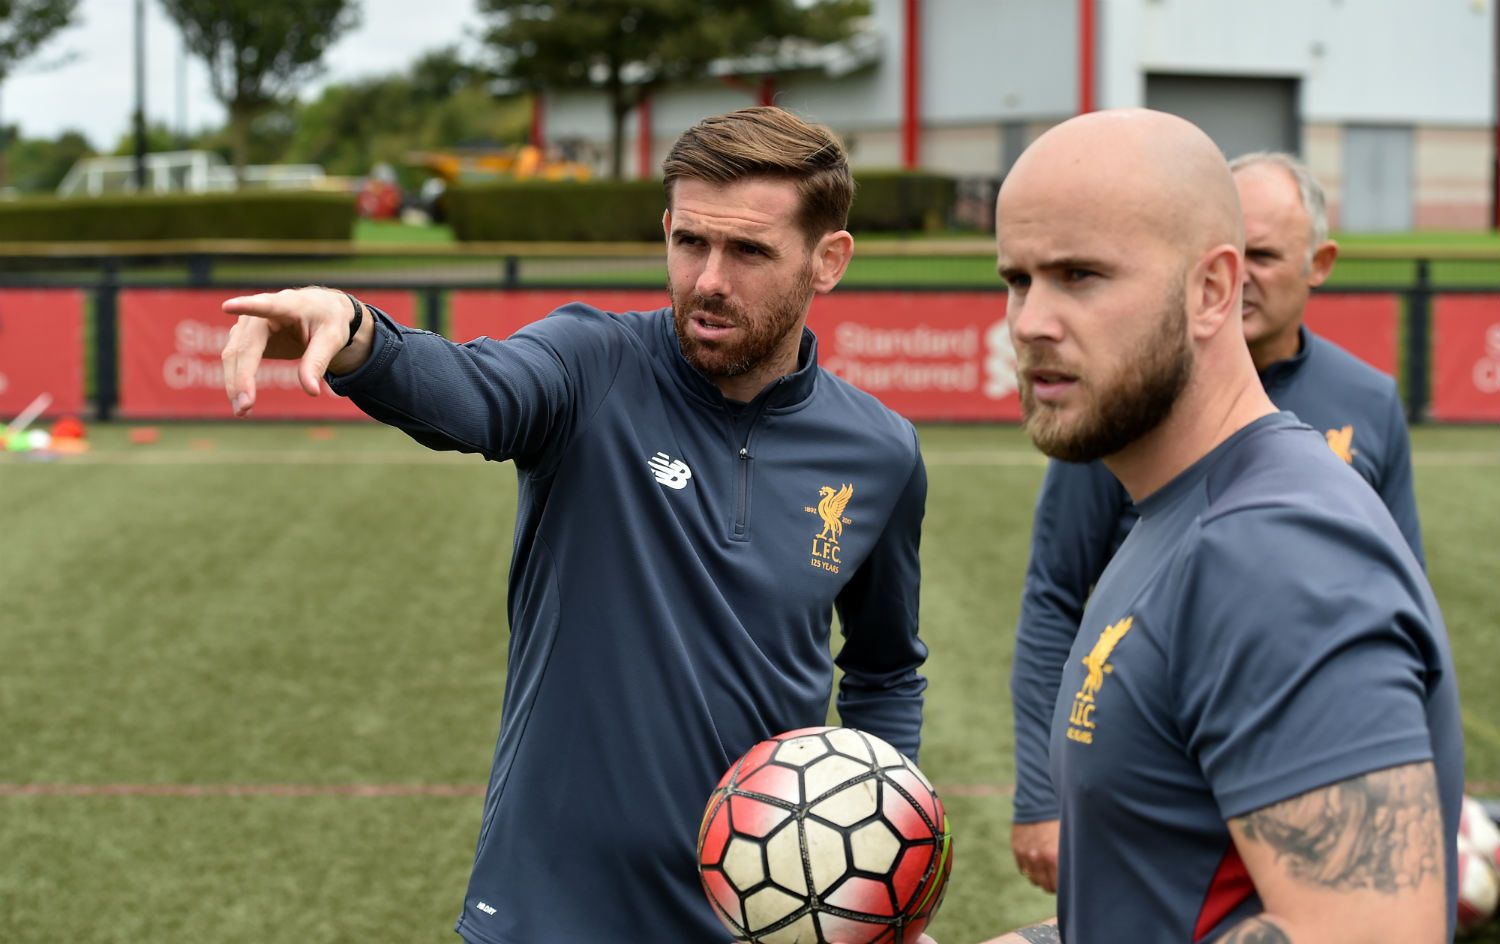 Steven Gillespie coaching at LFC Academy